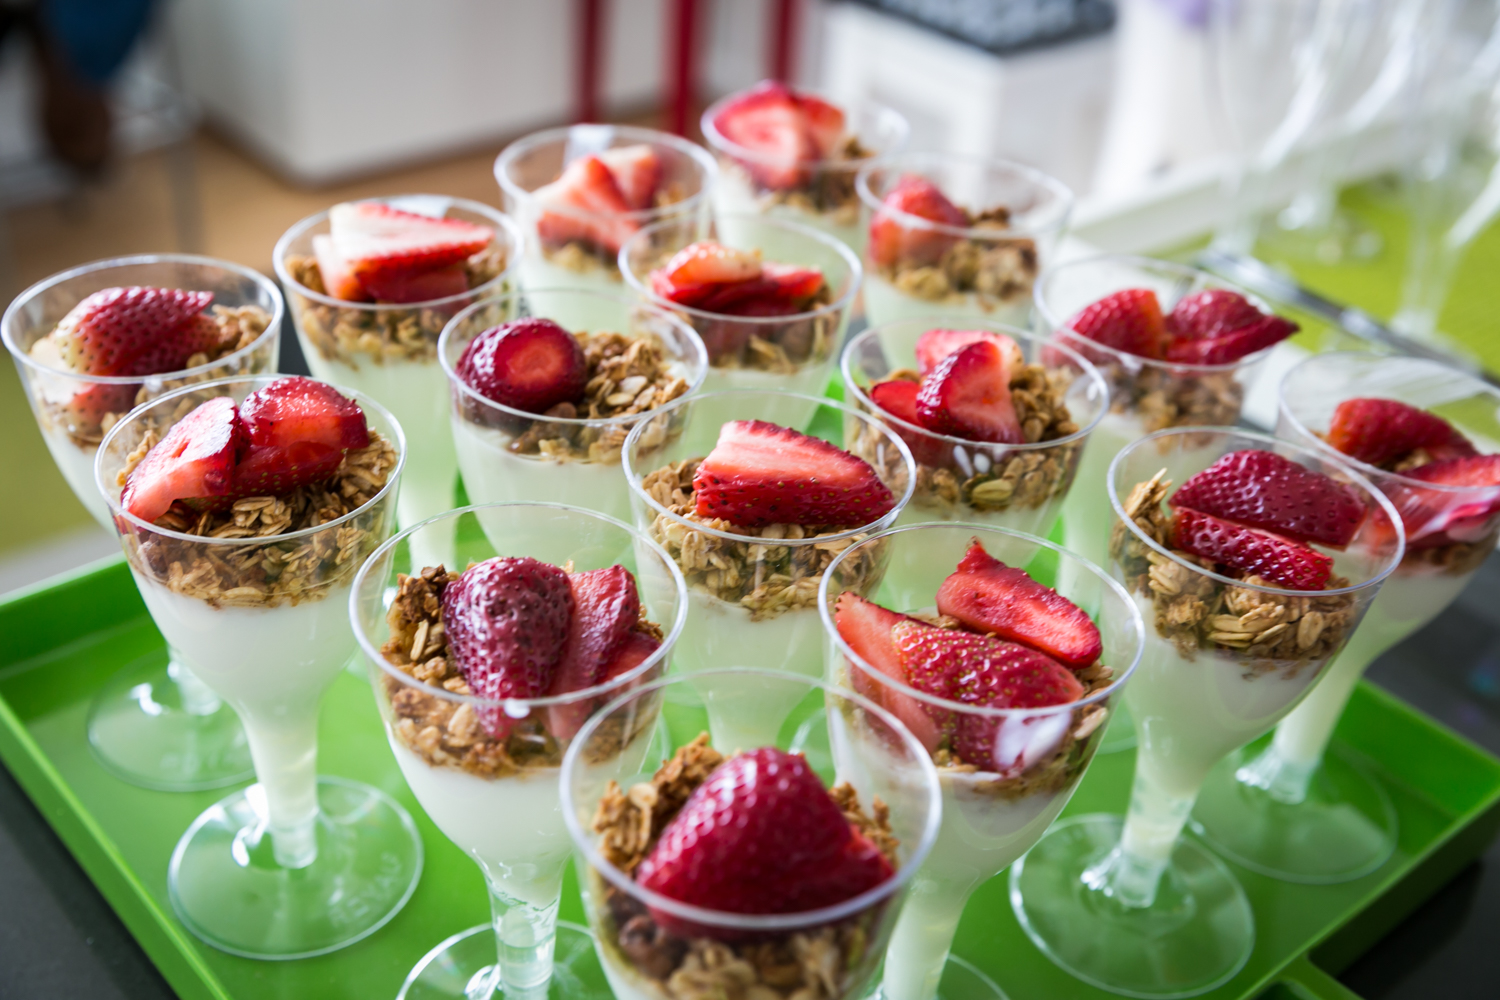 Wine glasses filled with yogurt and strawberries at a Long Island City wedding brunch